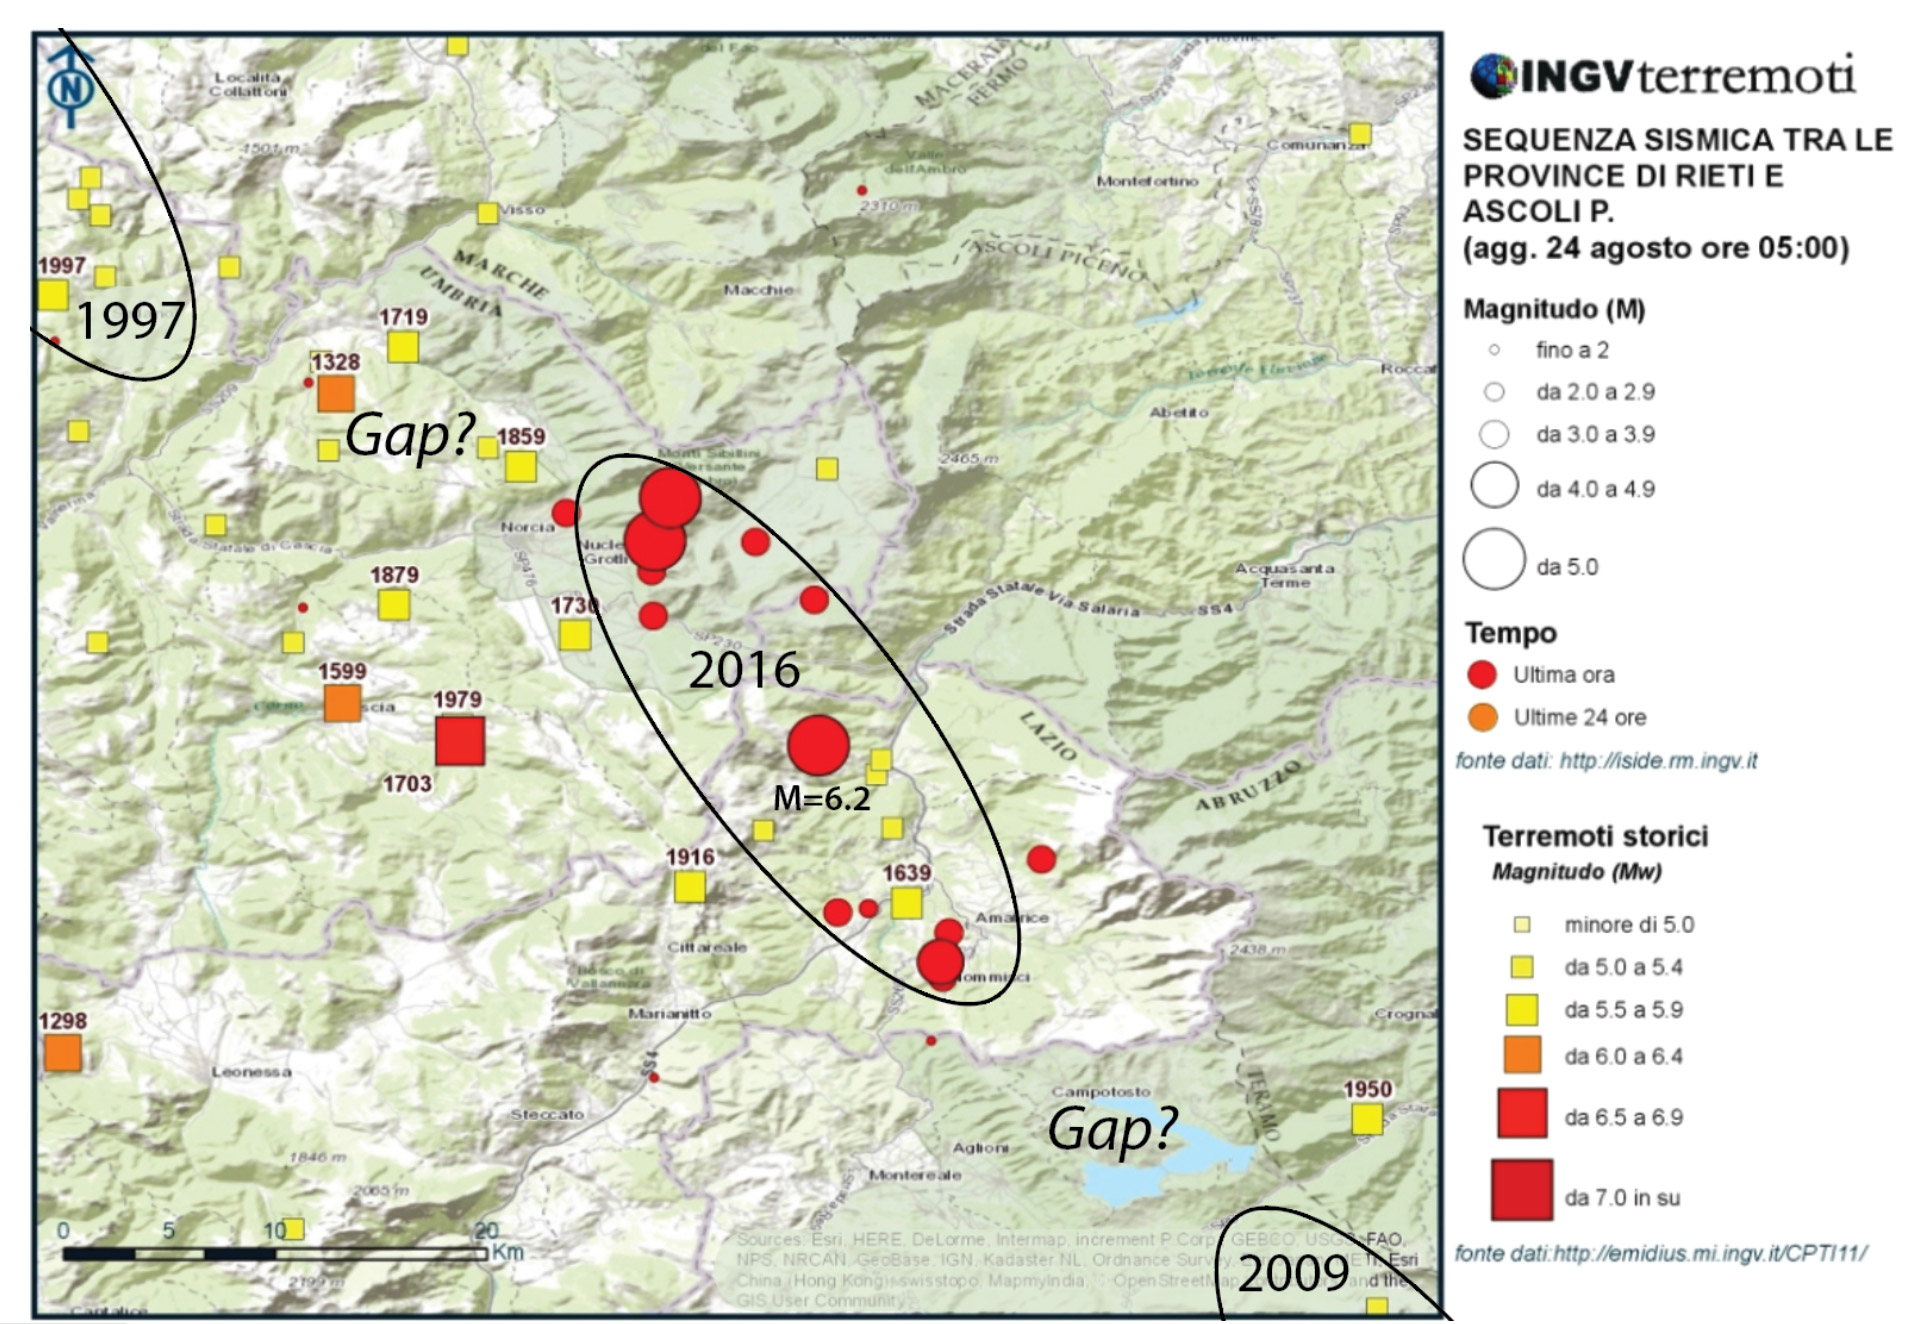 The 24 August 2016 M=6.2 earthquake struck between the sites of the 1997 M=6.1 Umbria-Marche shock to the northwest, and the 2009 M=6.3 L'Aquila shock to the southeast. This leaves potential gaps, at least since 1859, between the recent quakes, where another M~6 shock could conceivably strike. (Annotated from an INGV map).